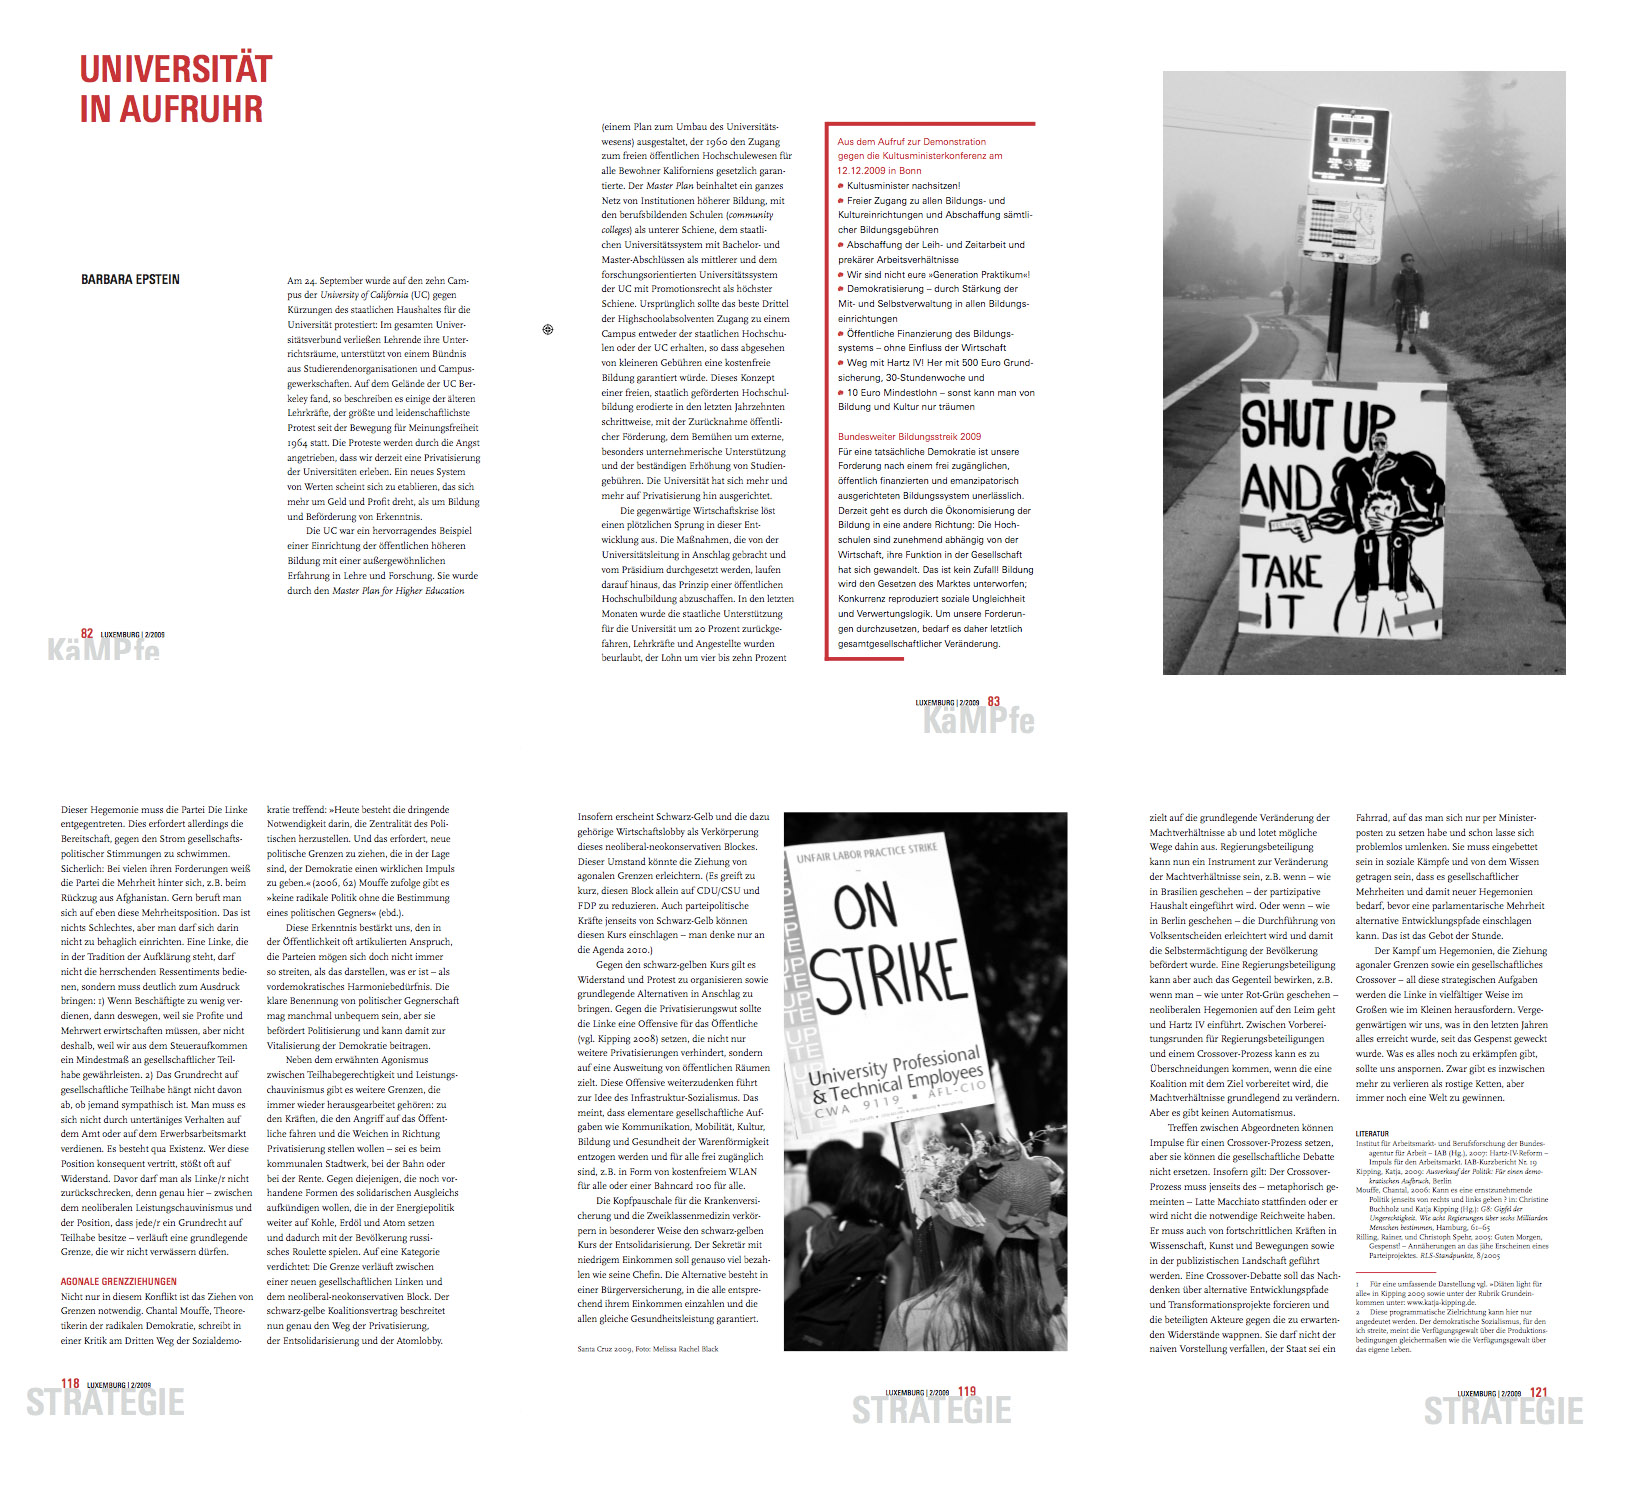 Photos of the 2008 University of California budget cut protests featured in German publication, Strategie.